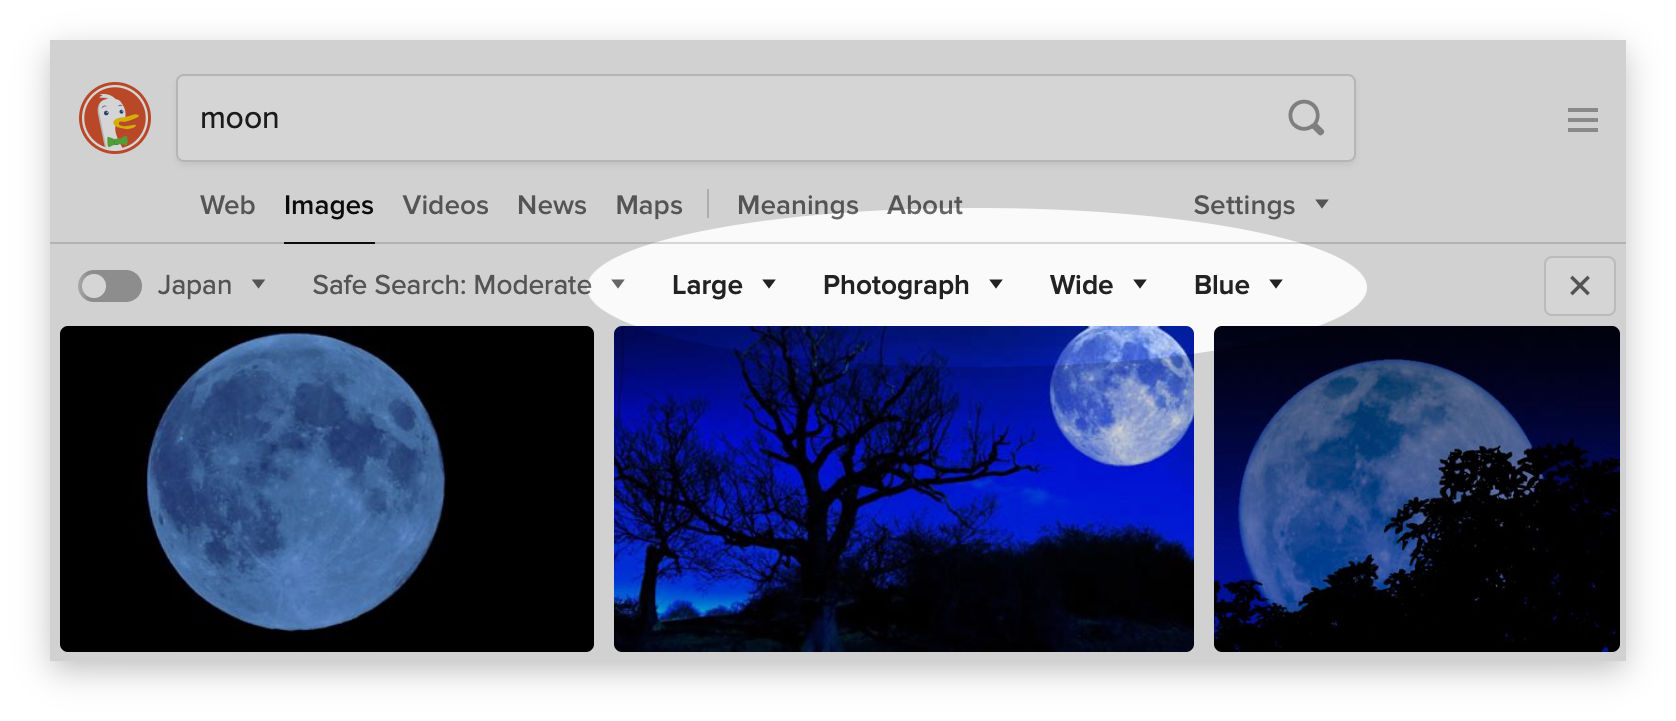 Screenshot showing the image filters in DuckDuckGo Search.